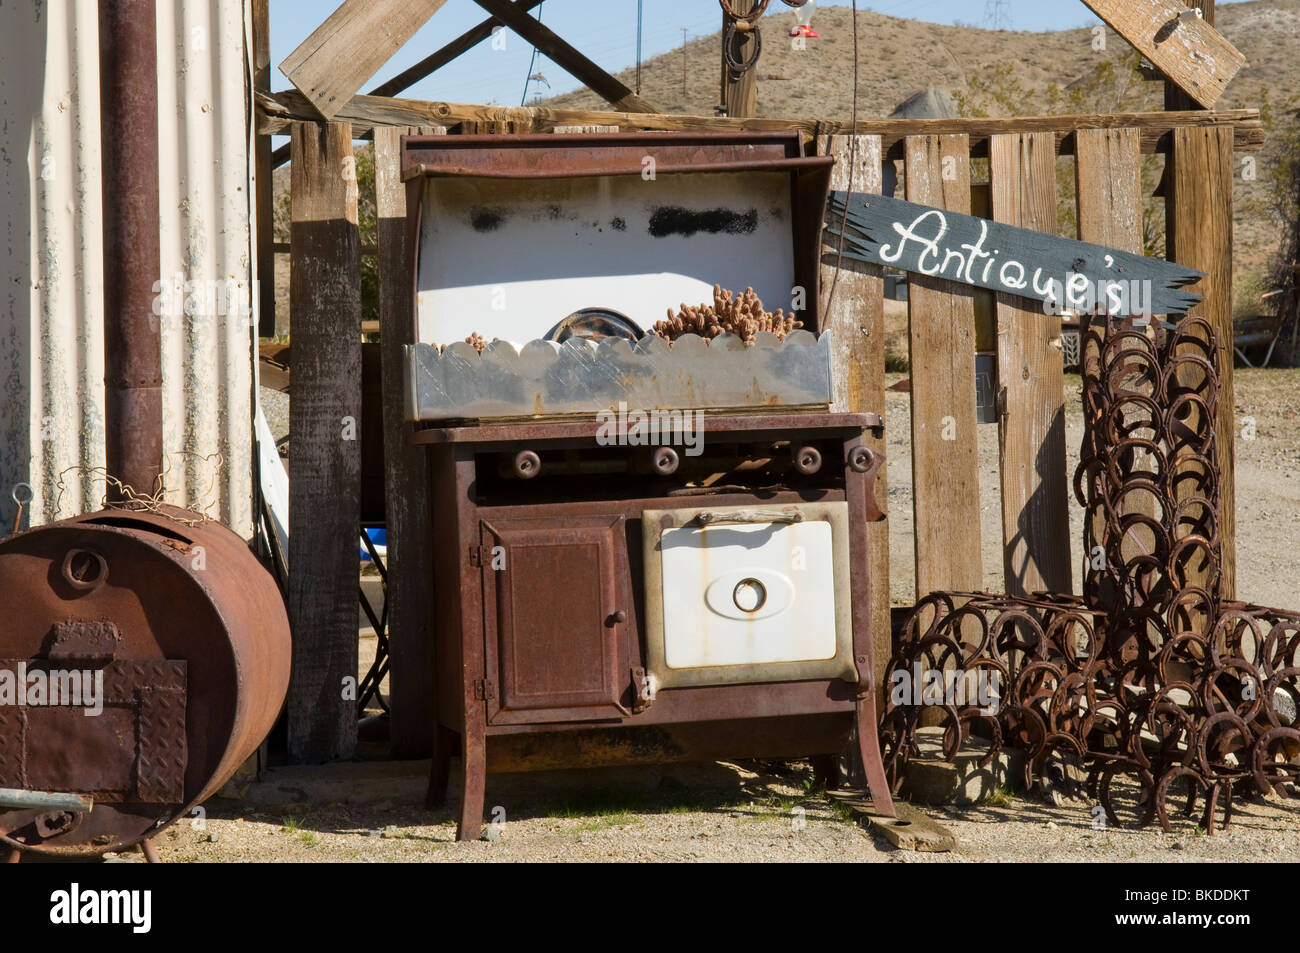 Old stove, horseshoes and other items in front of antique store in Randsburg, California - Stock Image